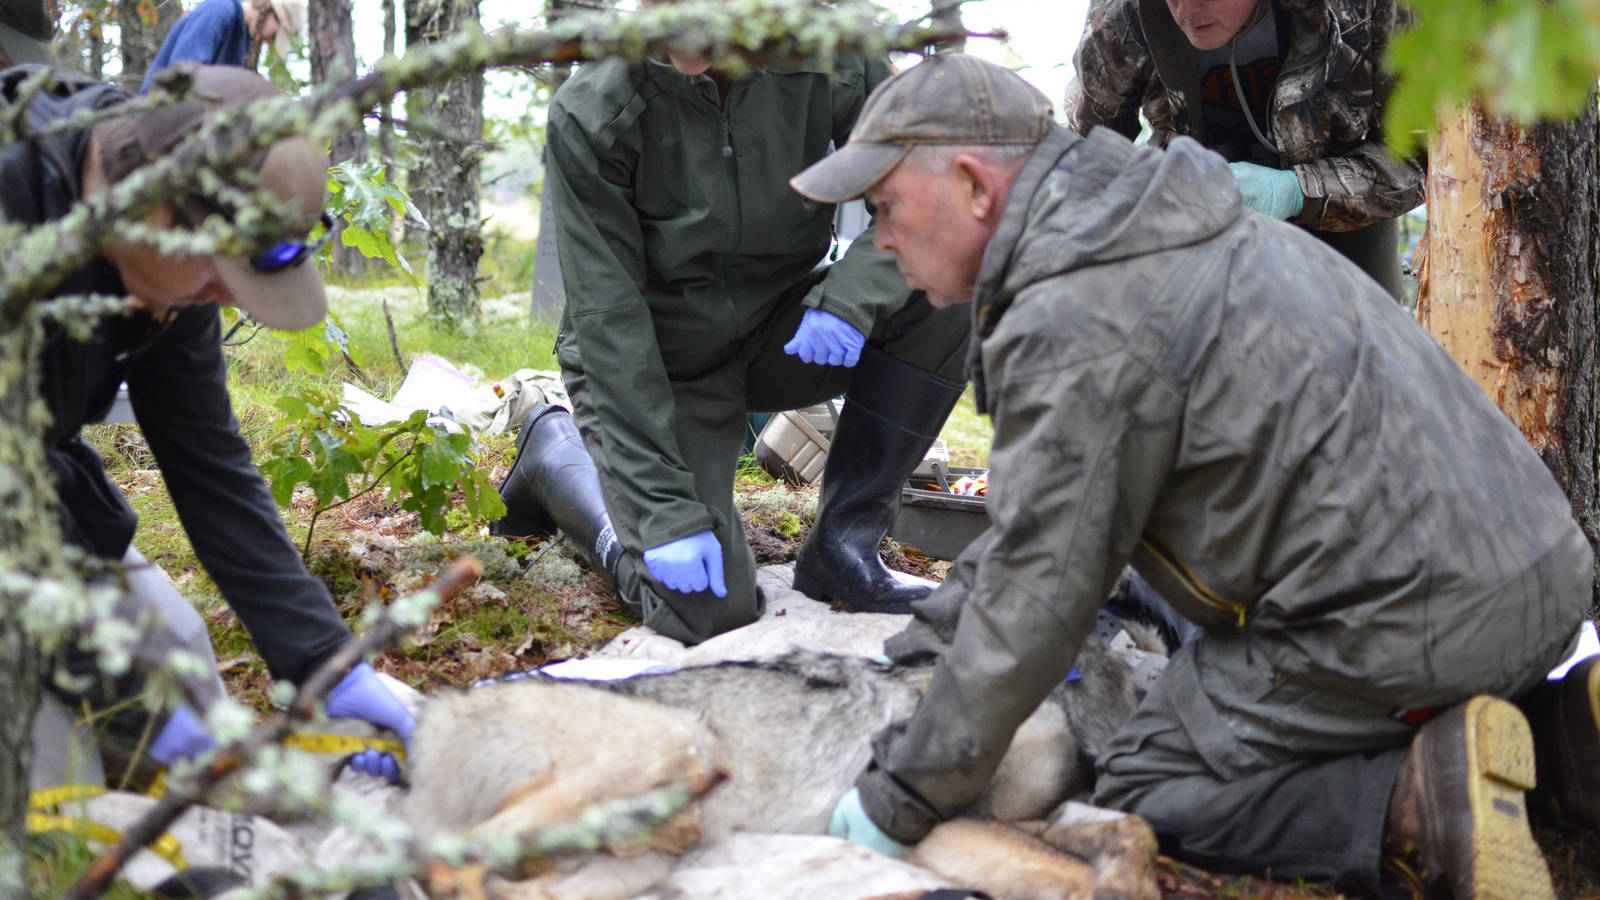 <p>Michigan Department of Natural Resources wildlife technician Brad Johnson, right, and Nick Fowler, graduate research assistant with the State University of New York's College of Environmental Science and Forestry take measurements of a gray wolf captured Sept. 6, 2019 in Michigan's Upper Peninsula. Looking on are National Park Service veterinarian Michelle Verant and Michigan DNR veterinary specialist Dan O'Brien.</p>